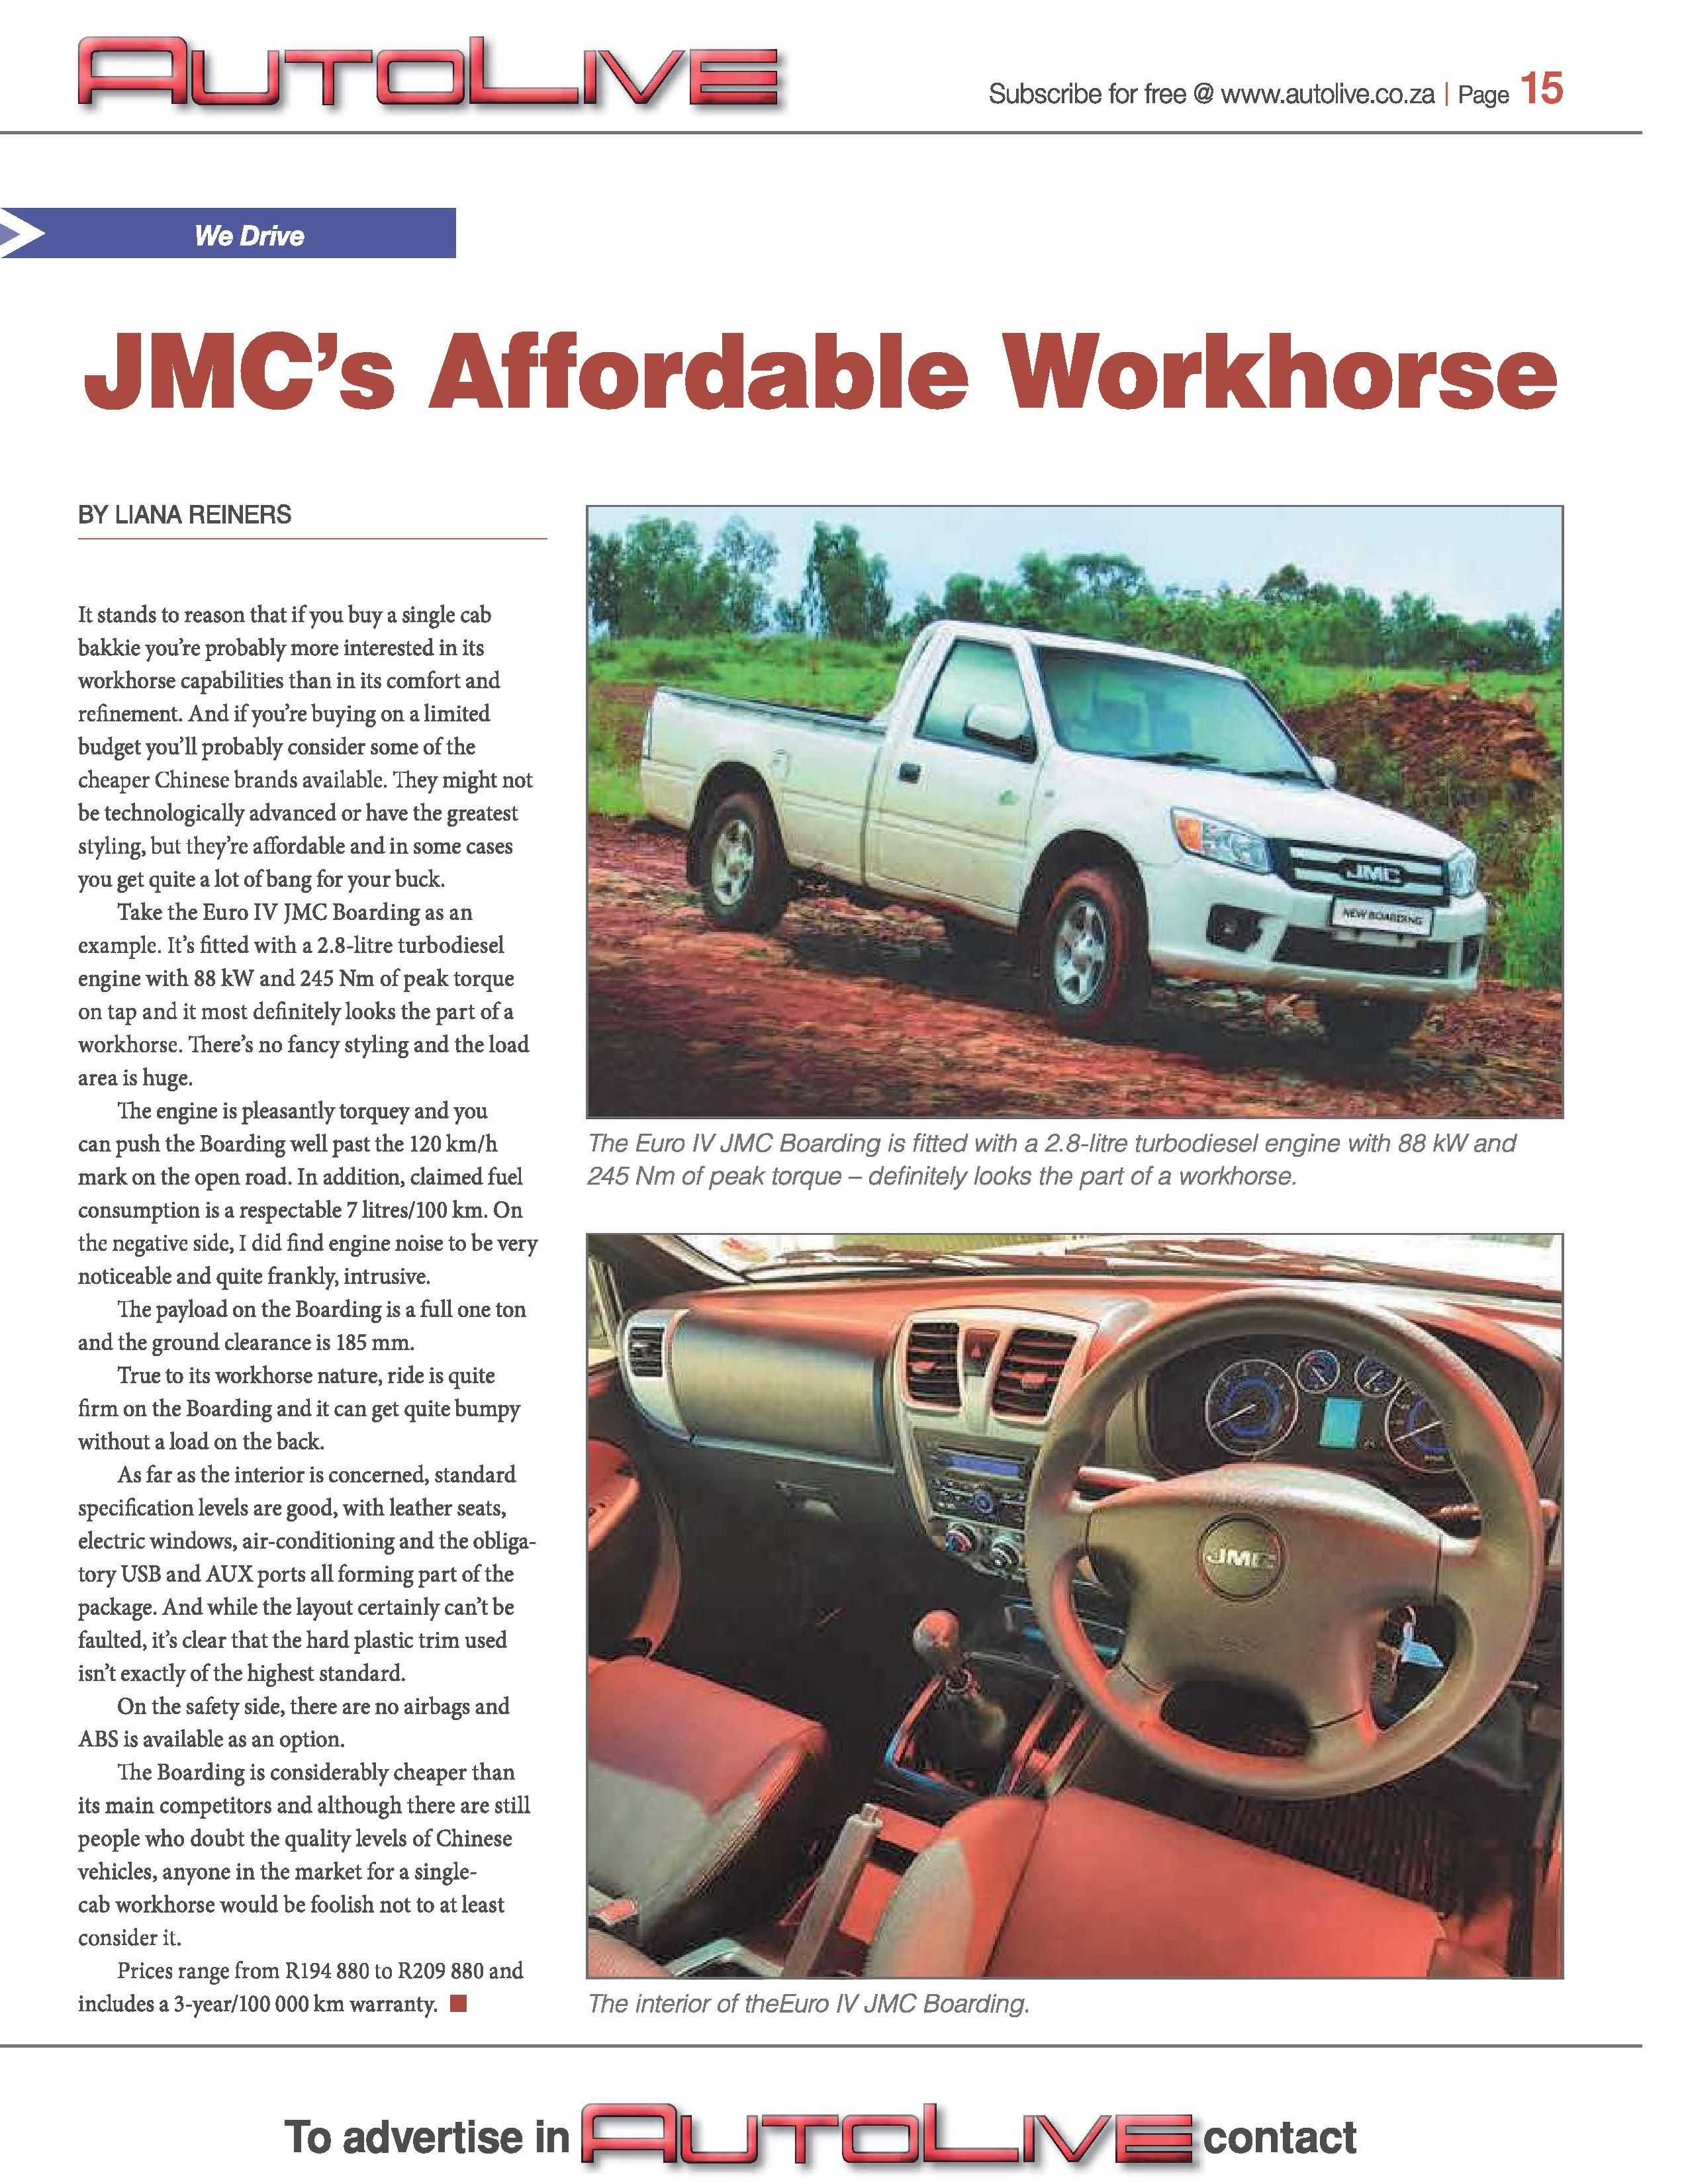 Are you looking for an affordable workhorse? #jmc